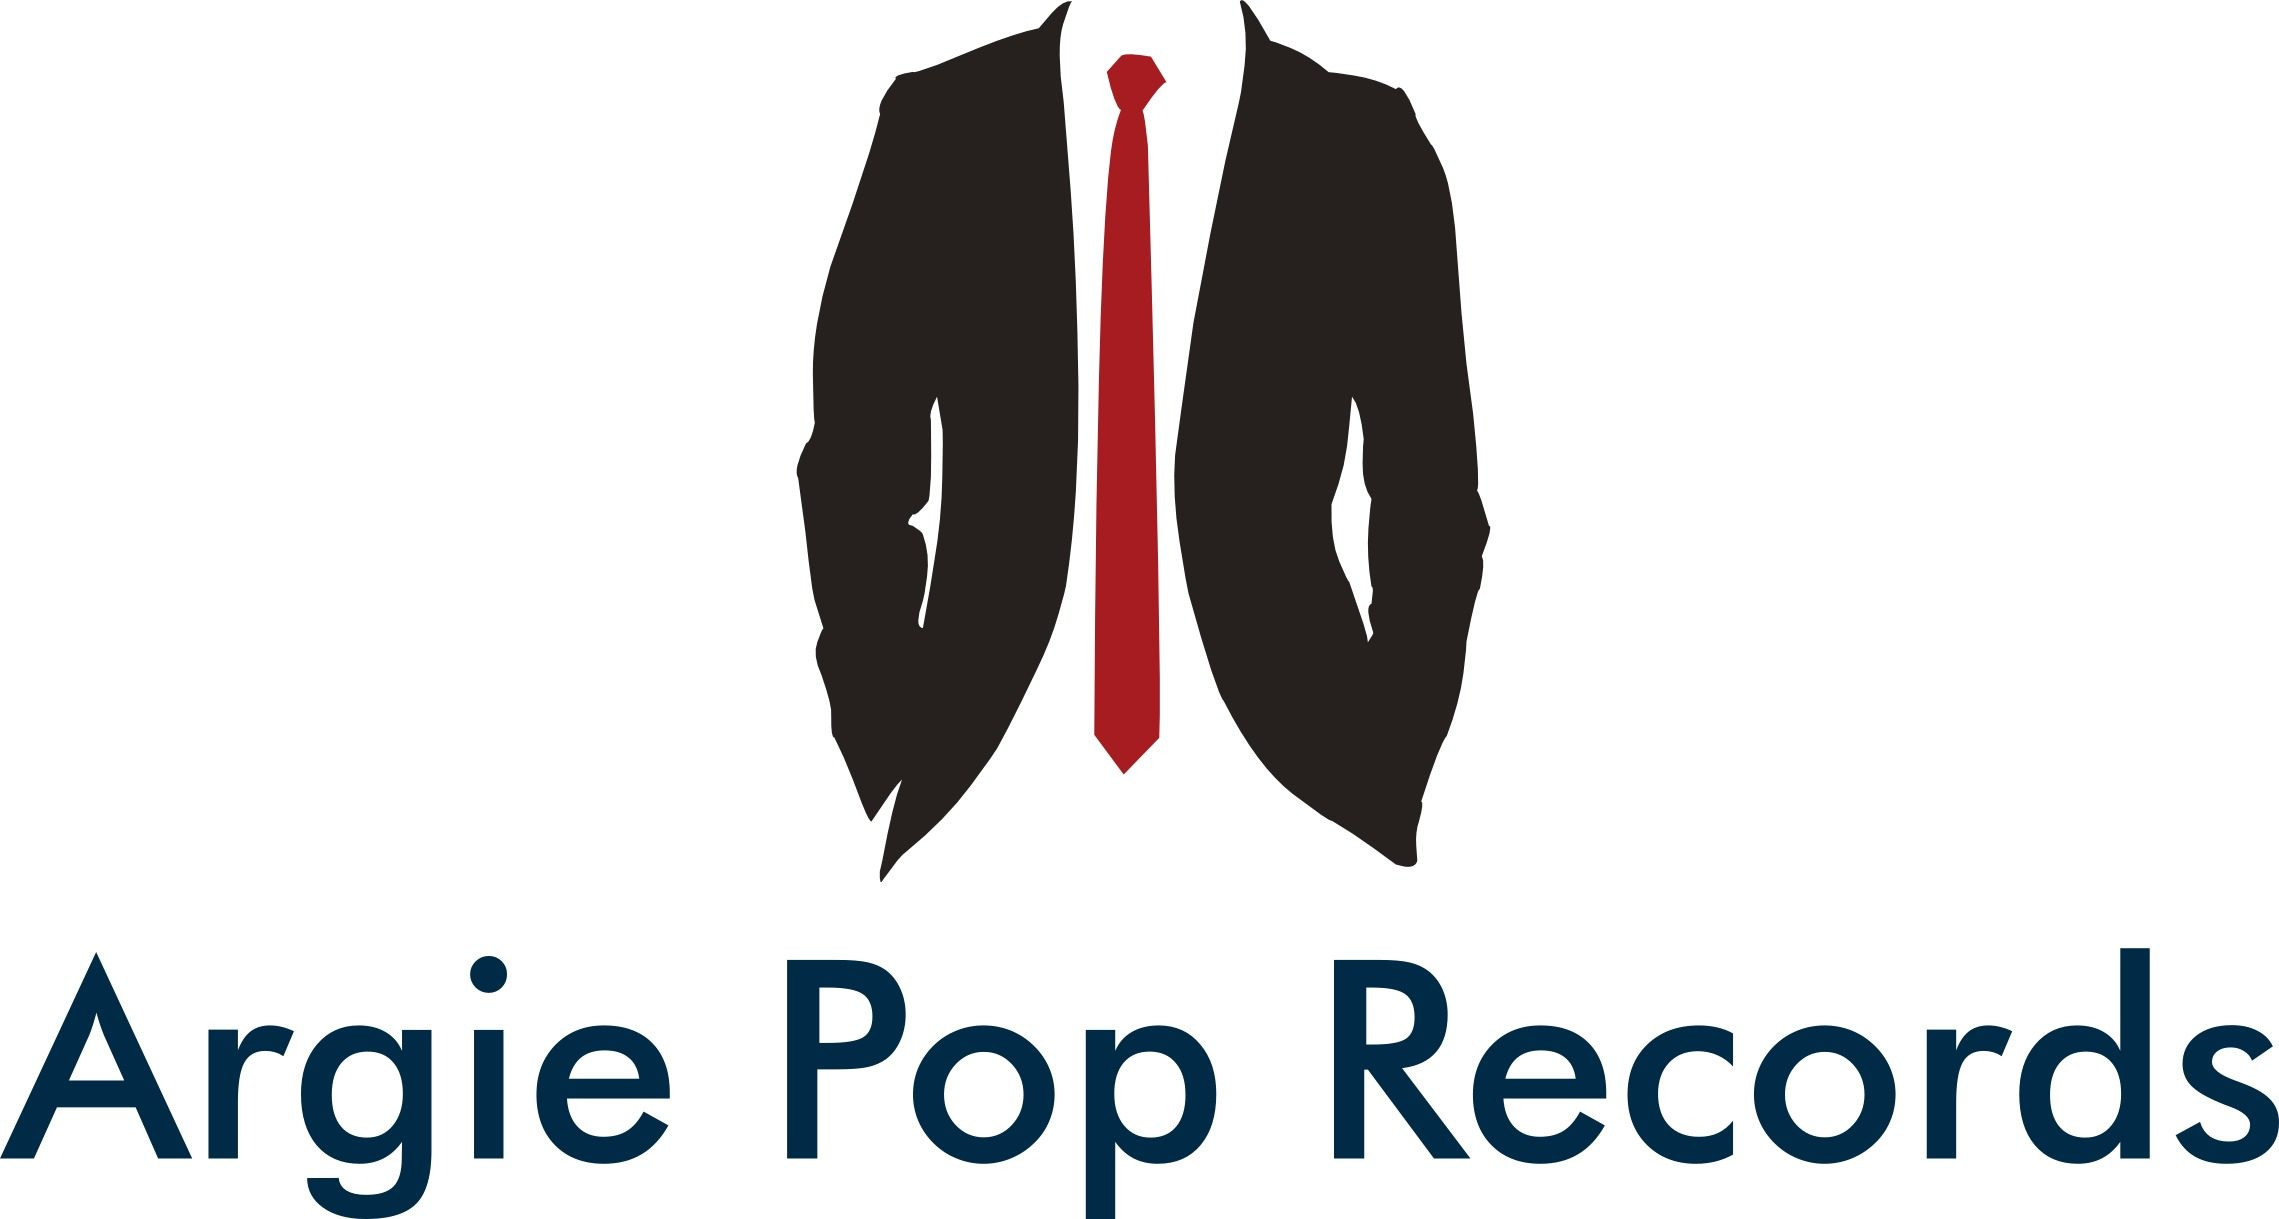 Argie Pop Records